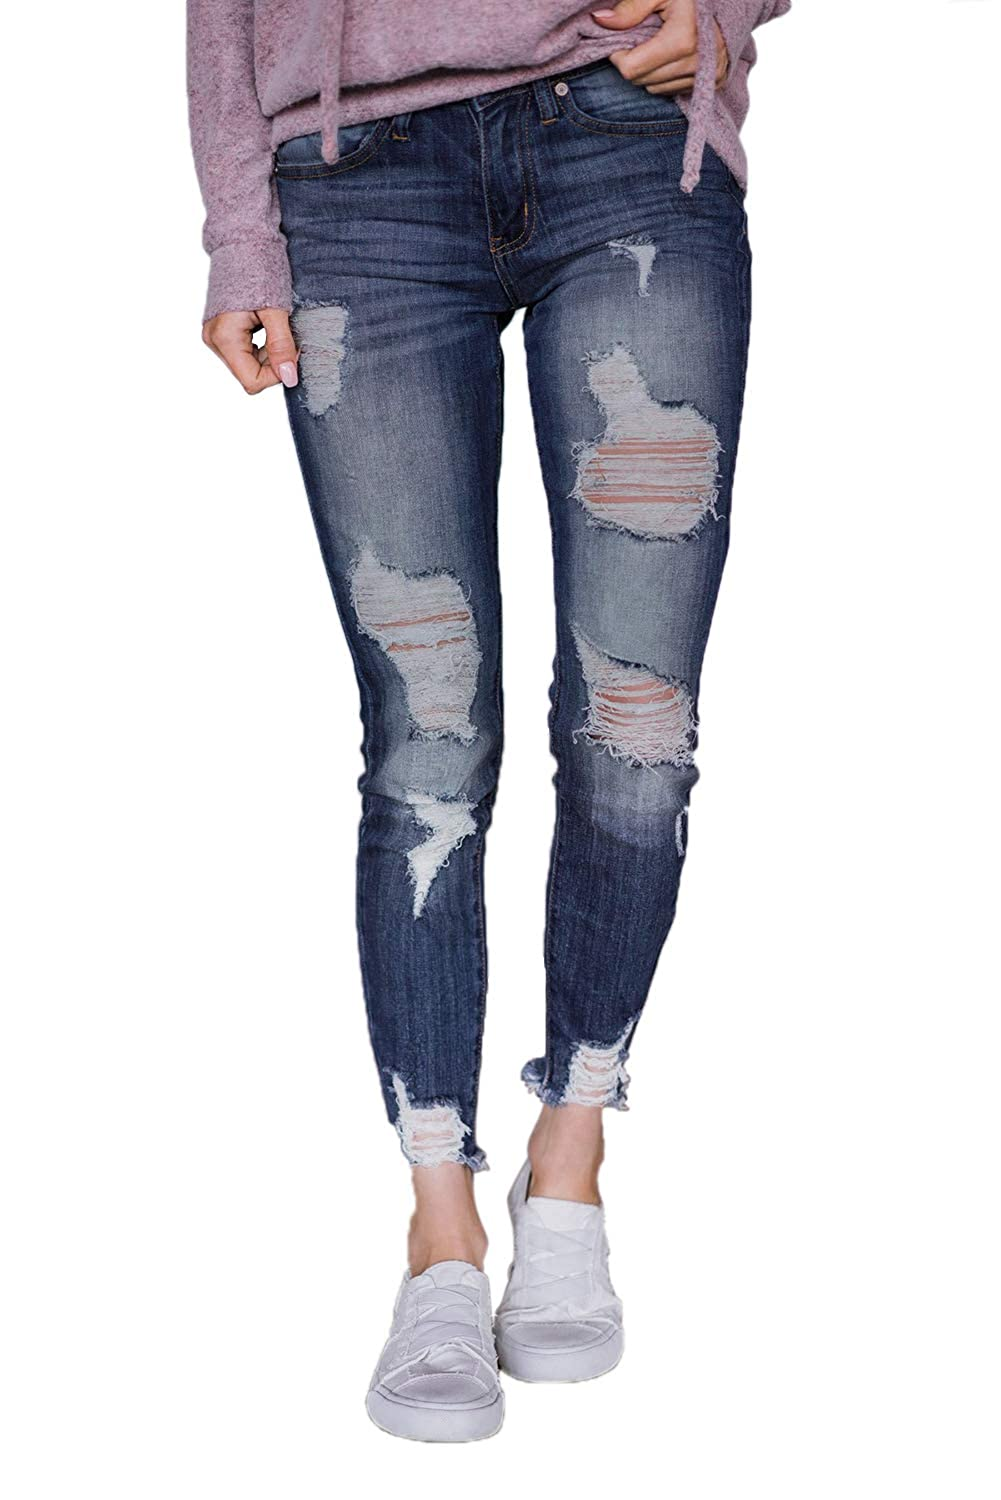 discount price shop shoes for cheap Meilidress Womens Ripped Jeans High Waisted Skinny ...